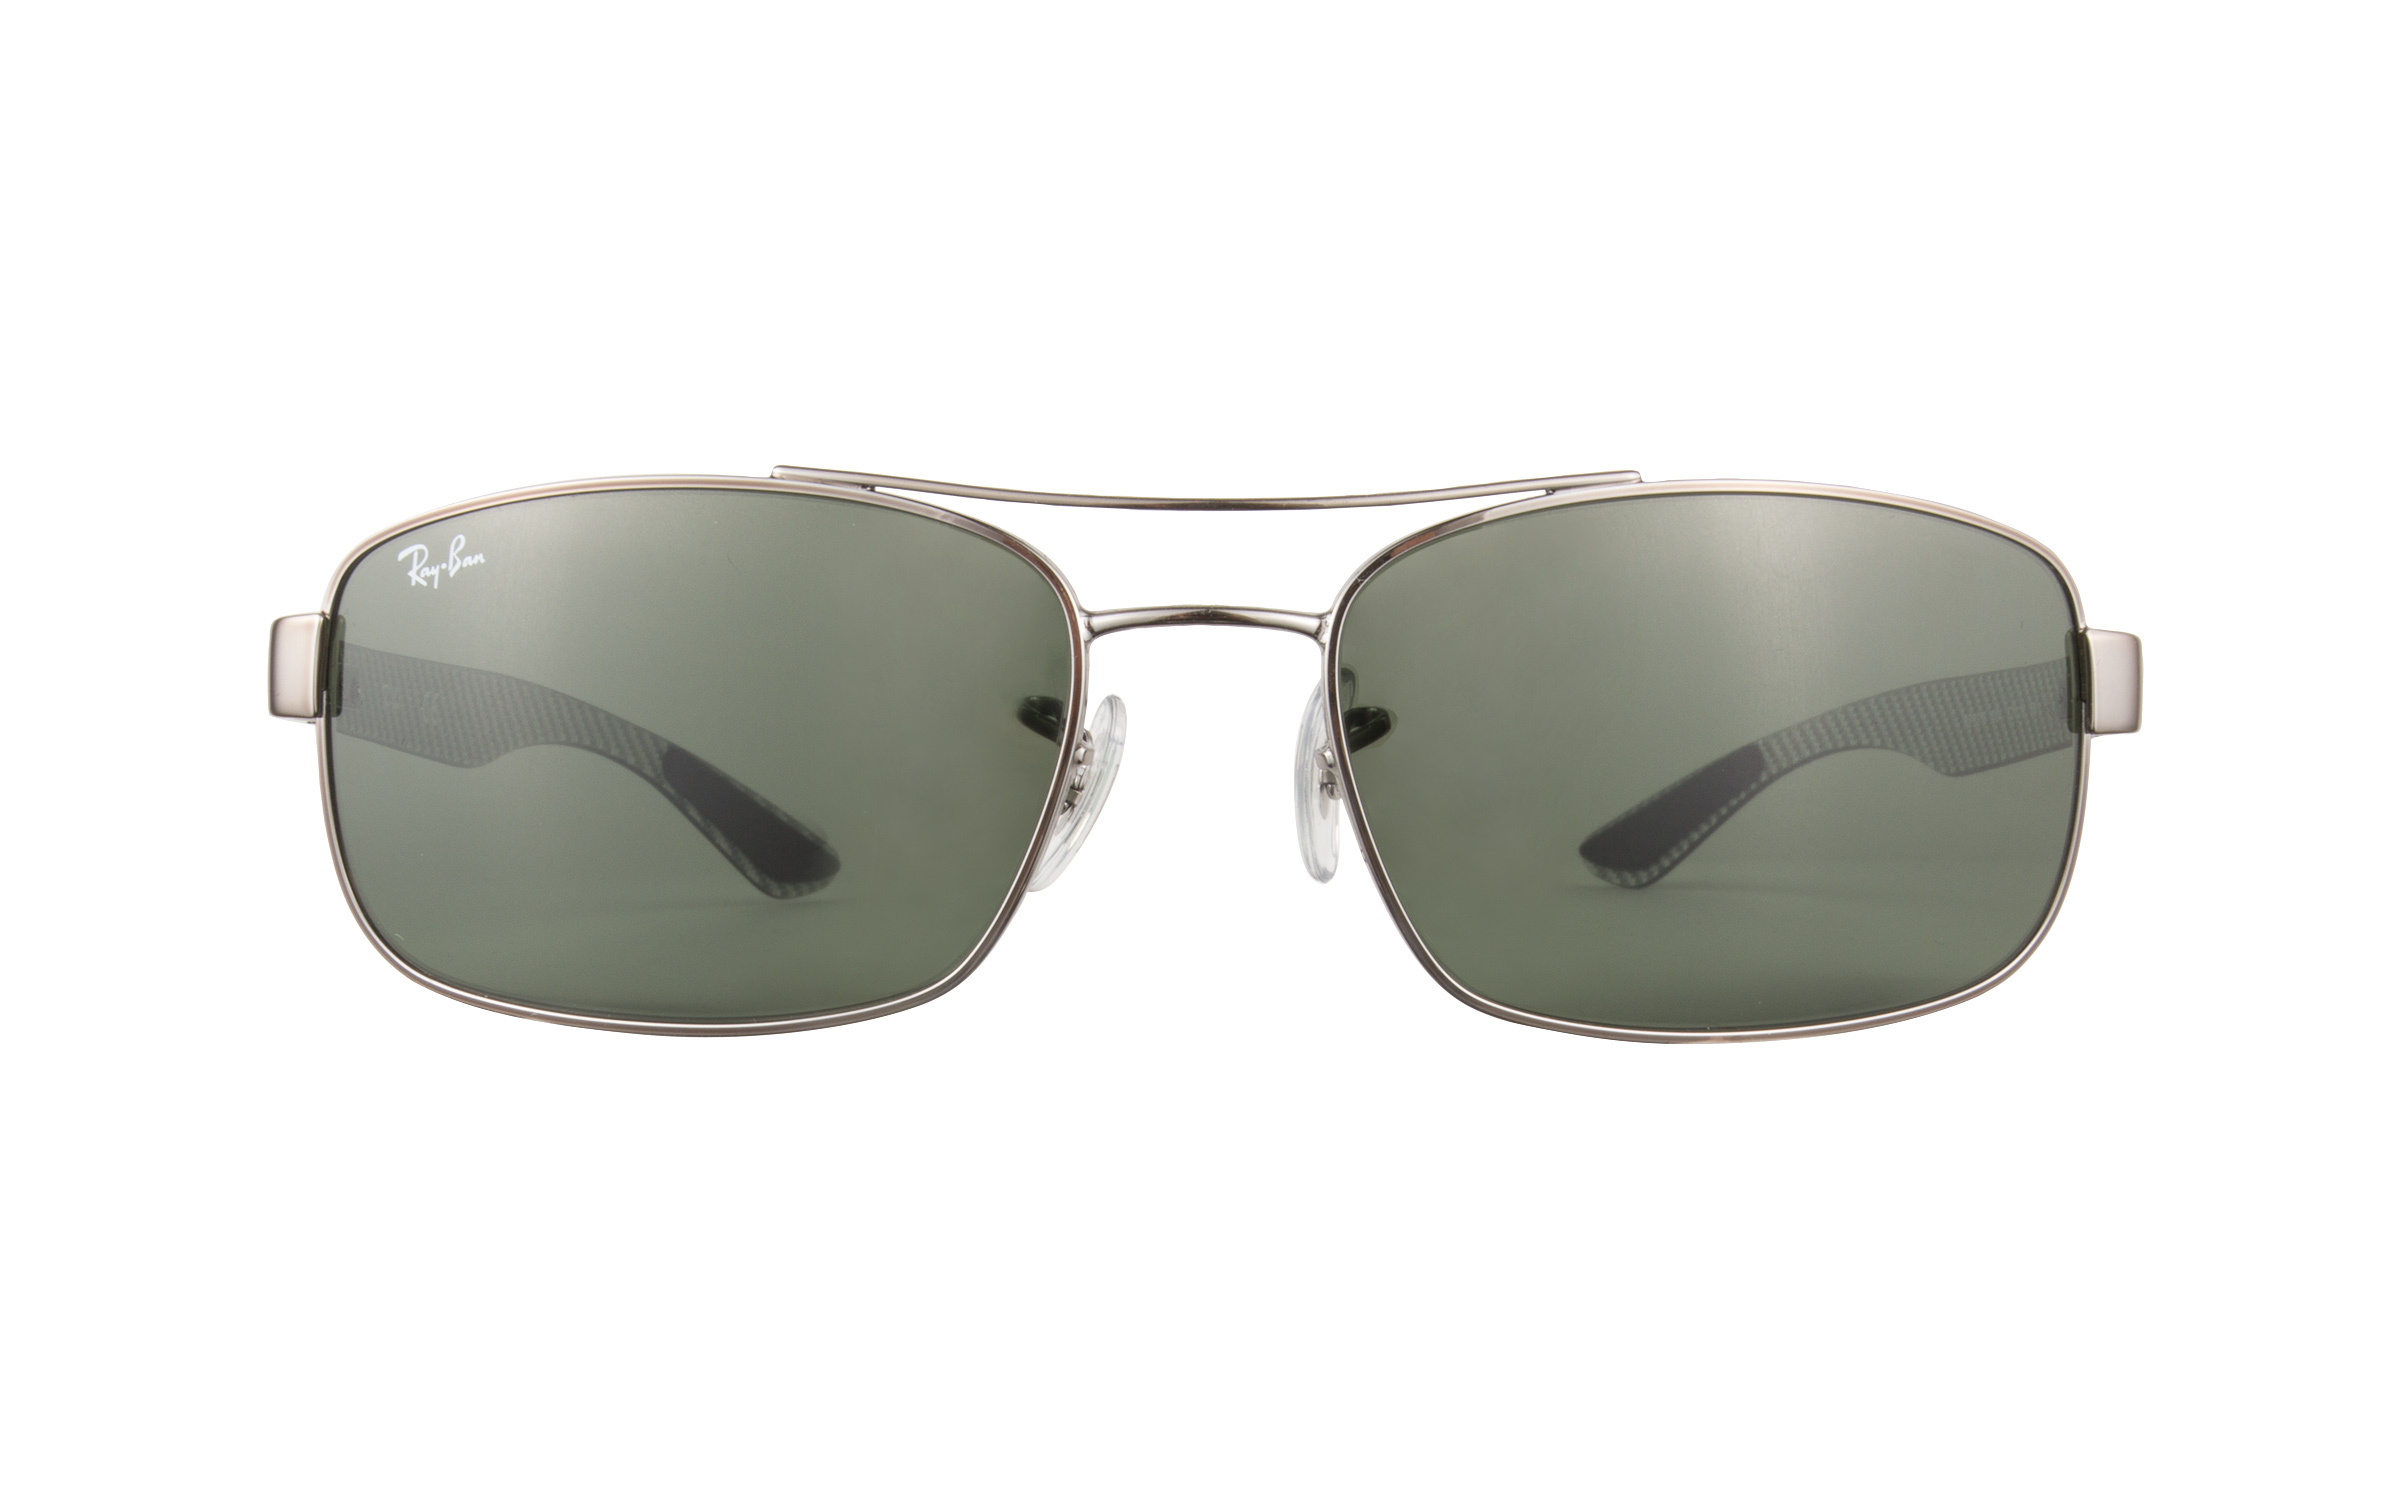 Ray-Ban RB8316 004 62 Sunglasses in Gunmetal Grey/Silver - Online Coastal